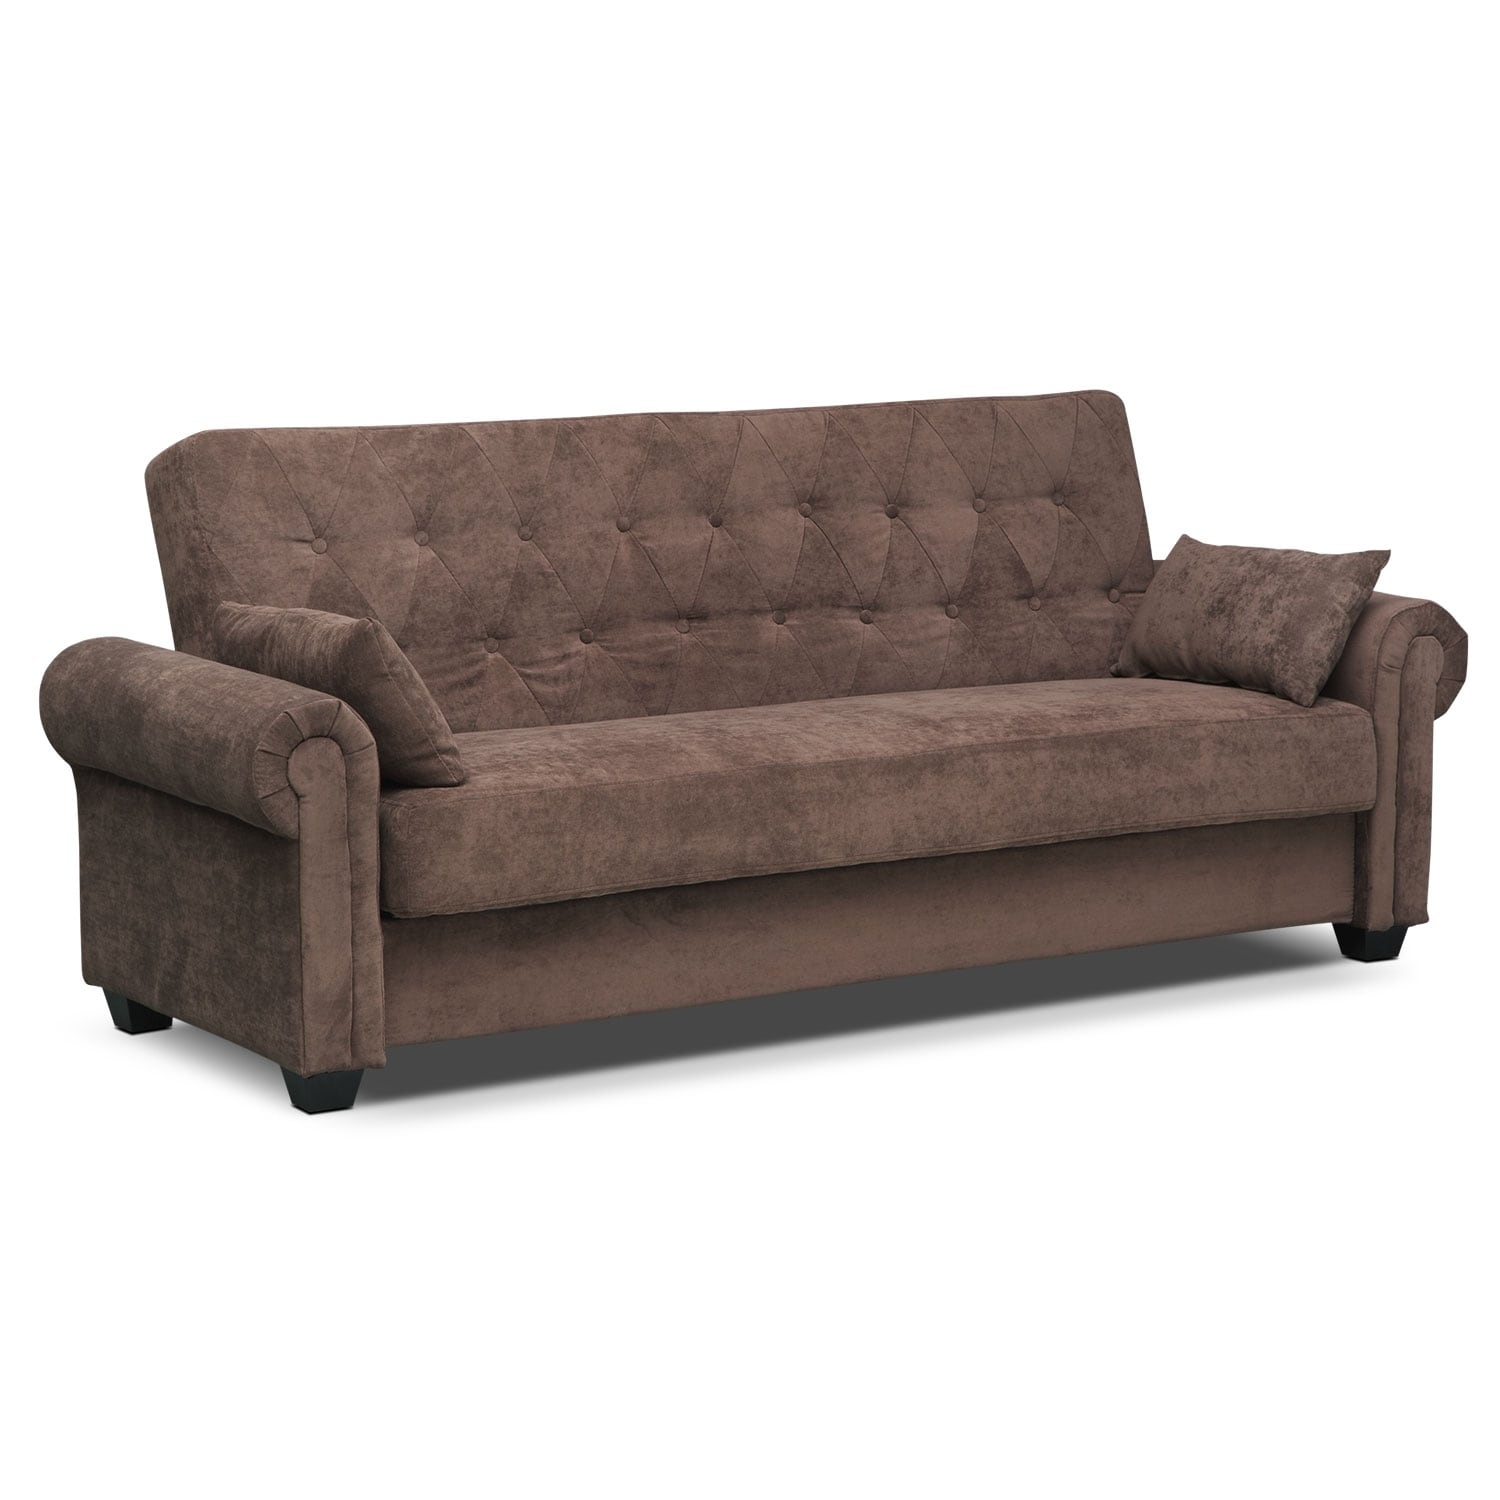 Andrea Upholstery Futon Sofa Bed With Storage